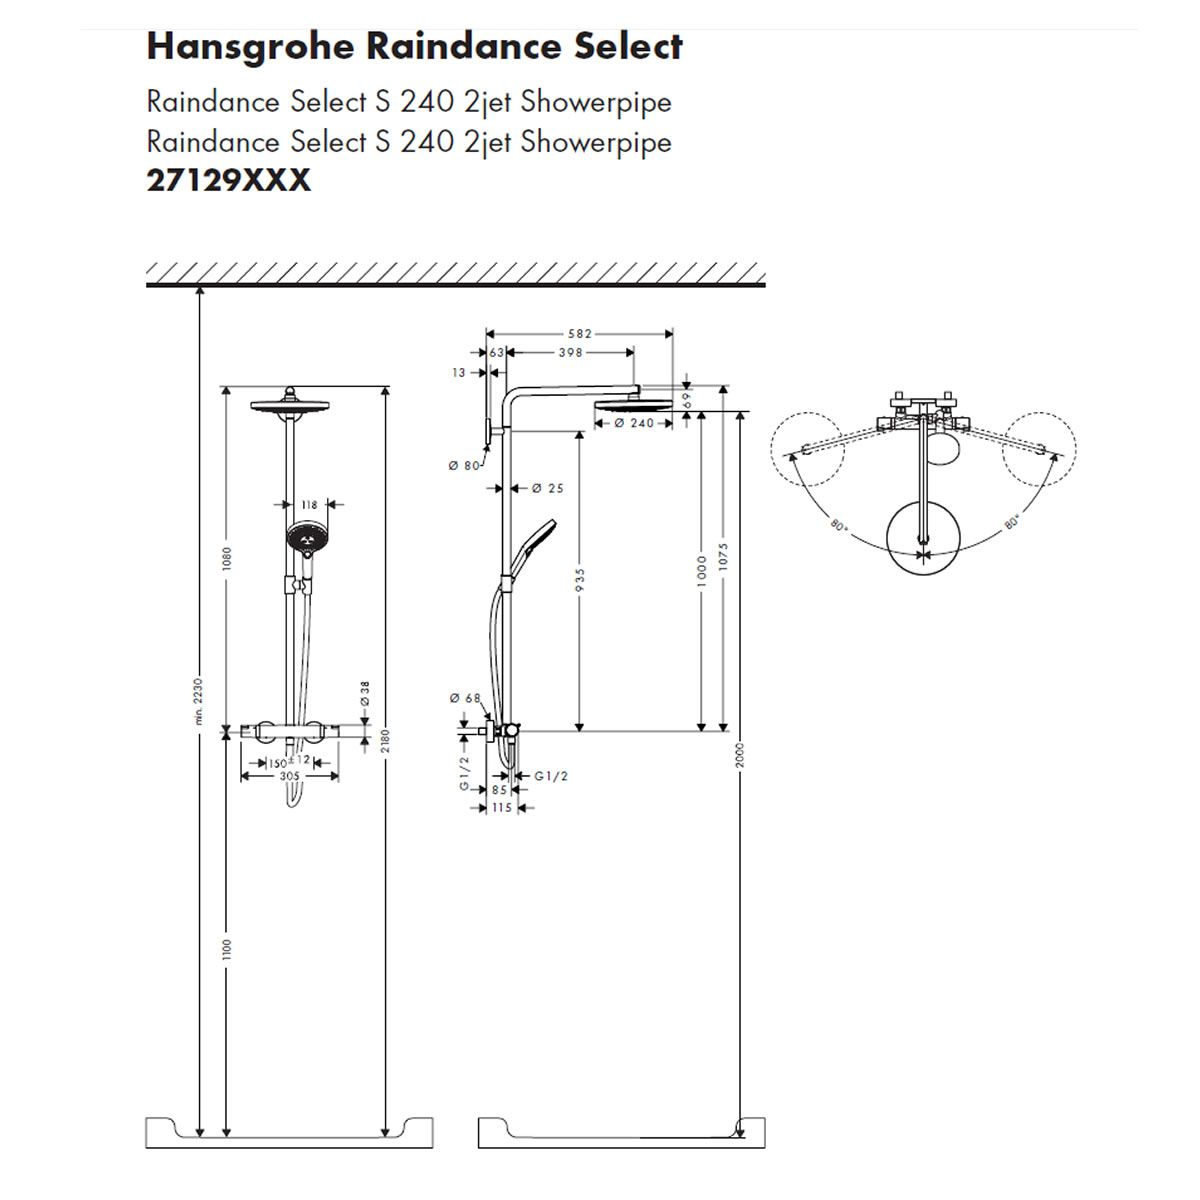 hansgrohe raindance select s 240 showerpipe 27129 uk. Black Bedroom Furniture Sets. Home Design Ideas